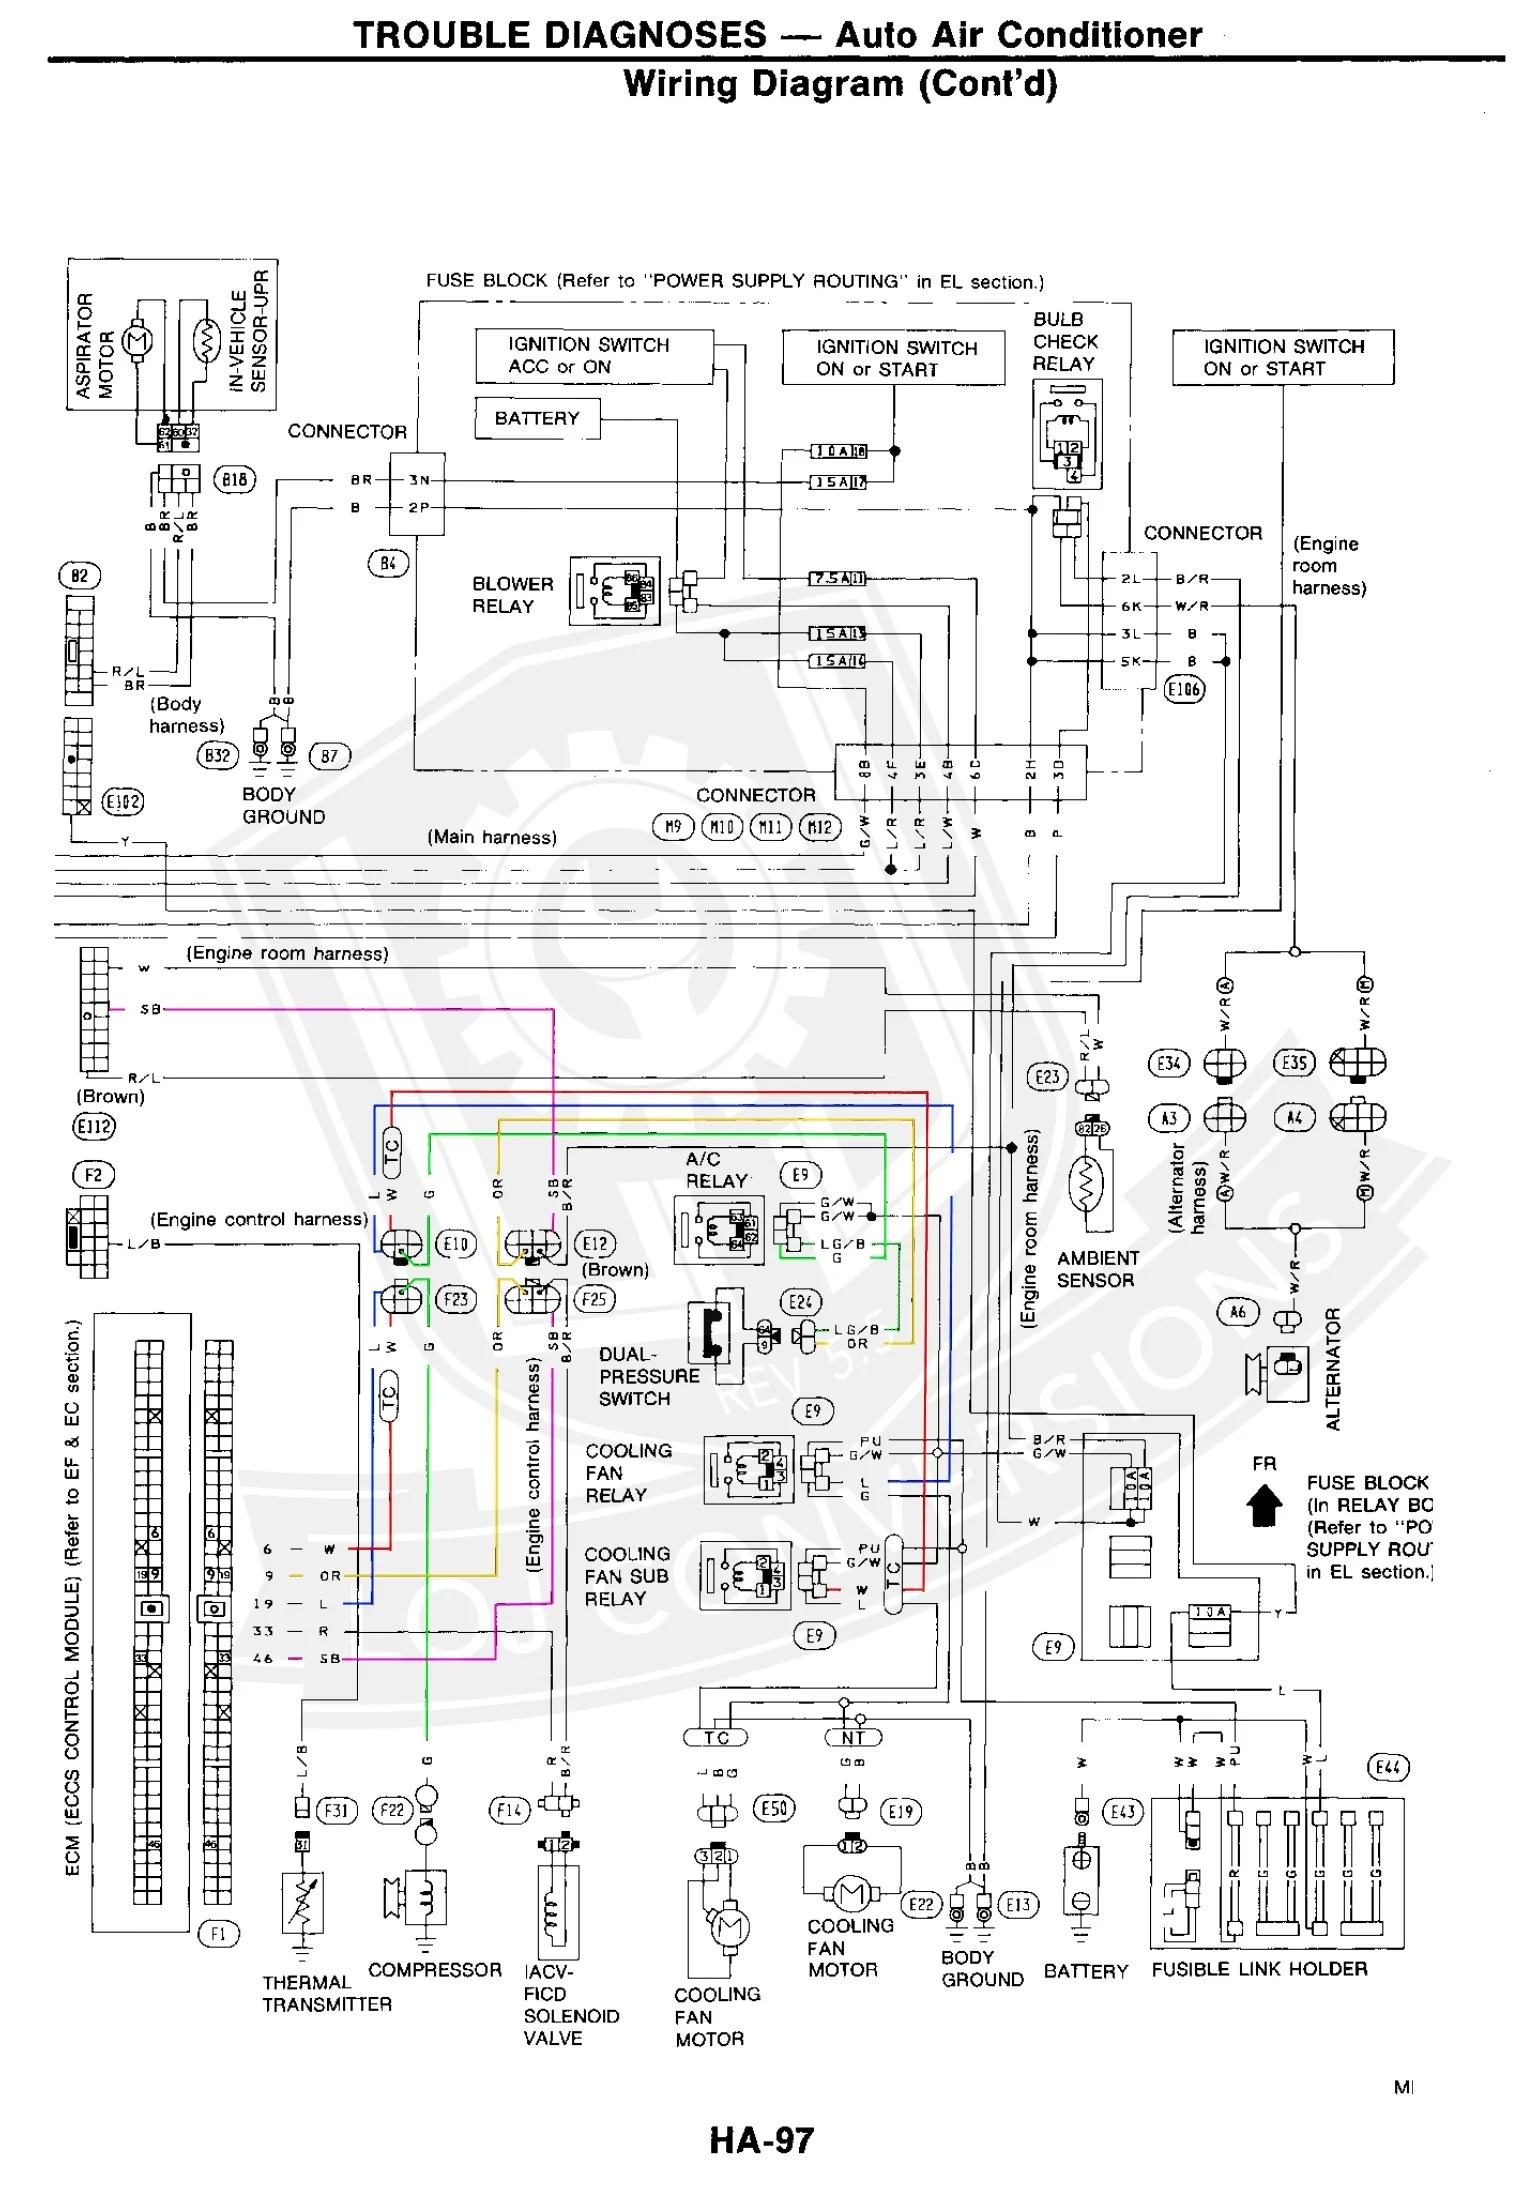 300zx wire diagram wiring diagrams konsult 1990 300zx harness layout [ 1515 x 2194 Pixel ]